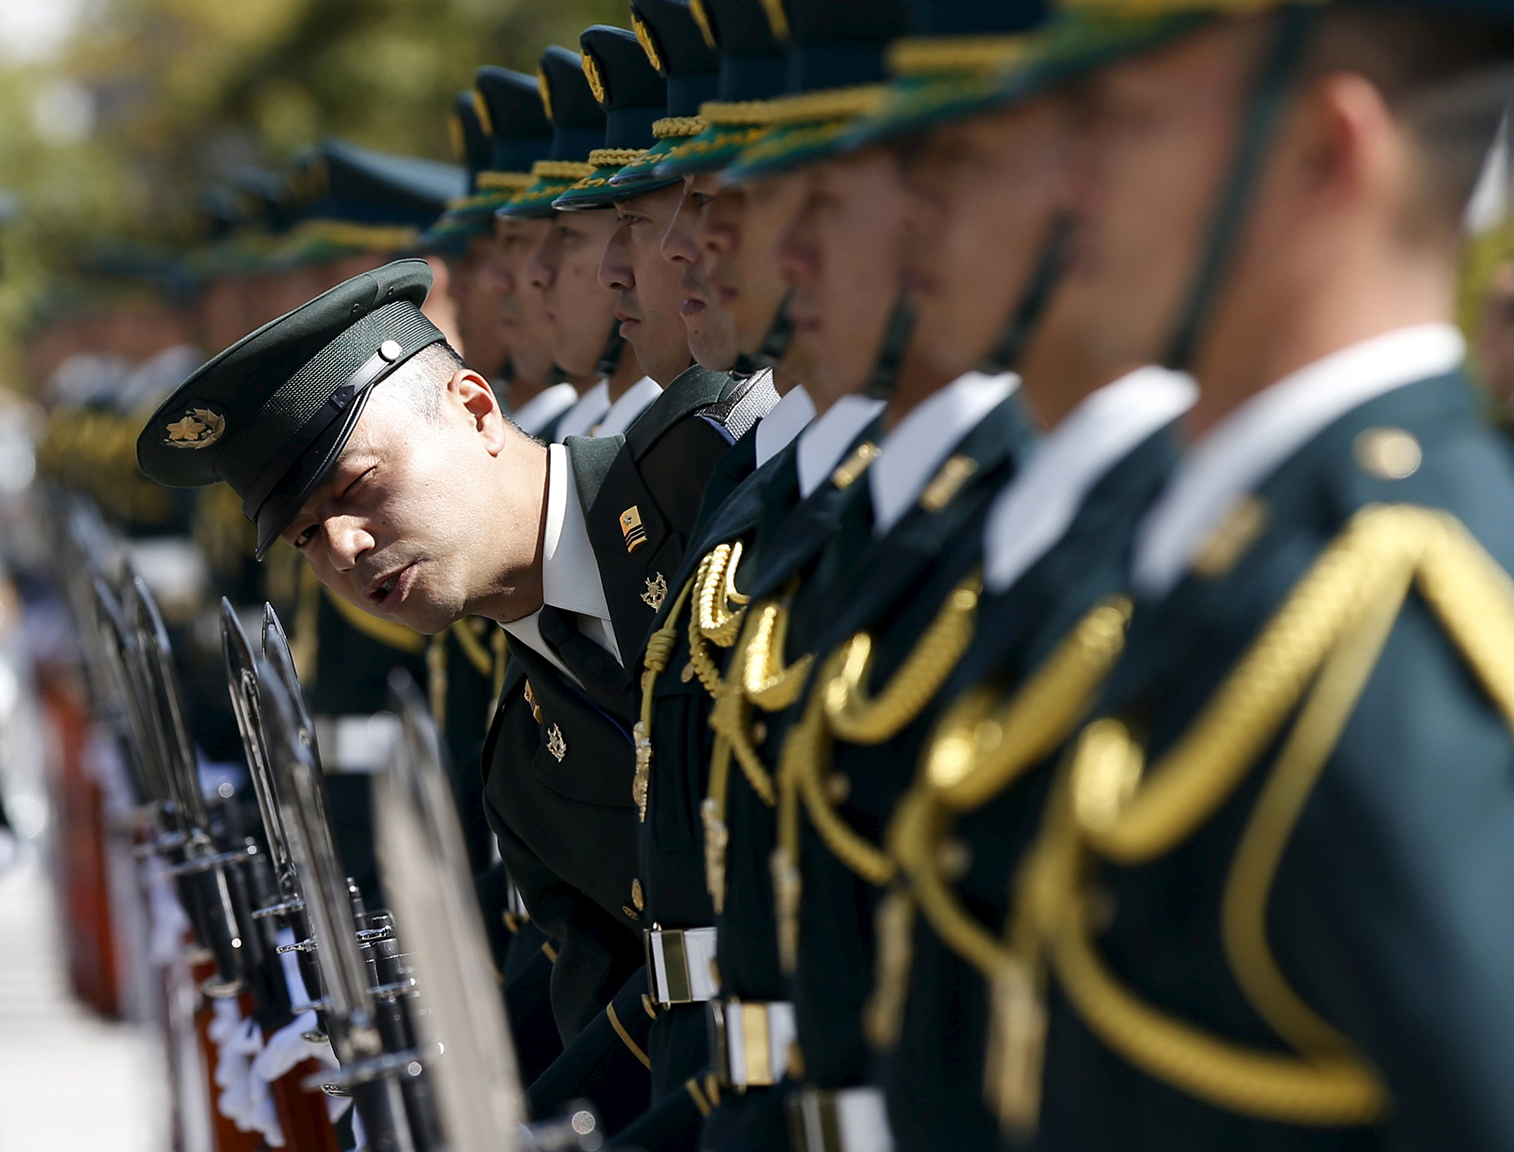 Members of Japan's Self-Defence Force's honour guard prepare for a ceremony for U.S. Army General Dempsey, chairman of the Joint Chiefs of Staff, at the Defense Ministry in Tokyo